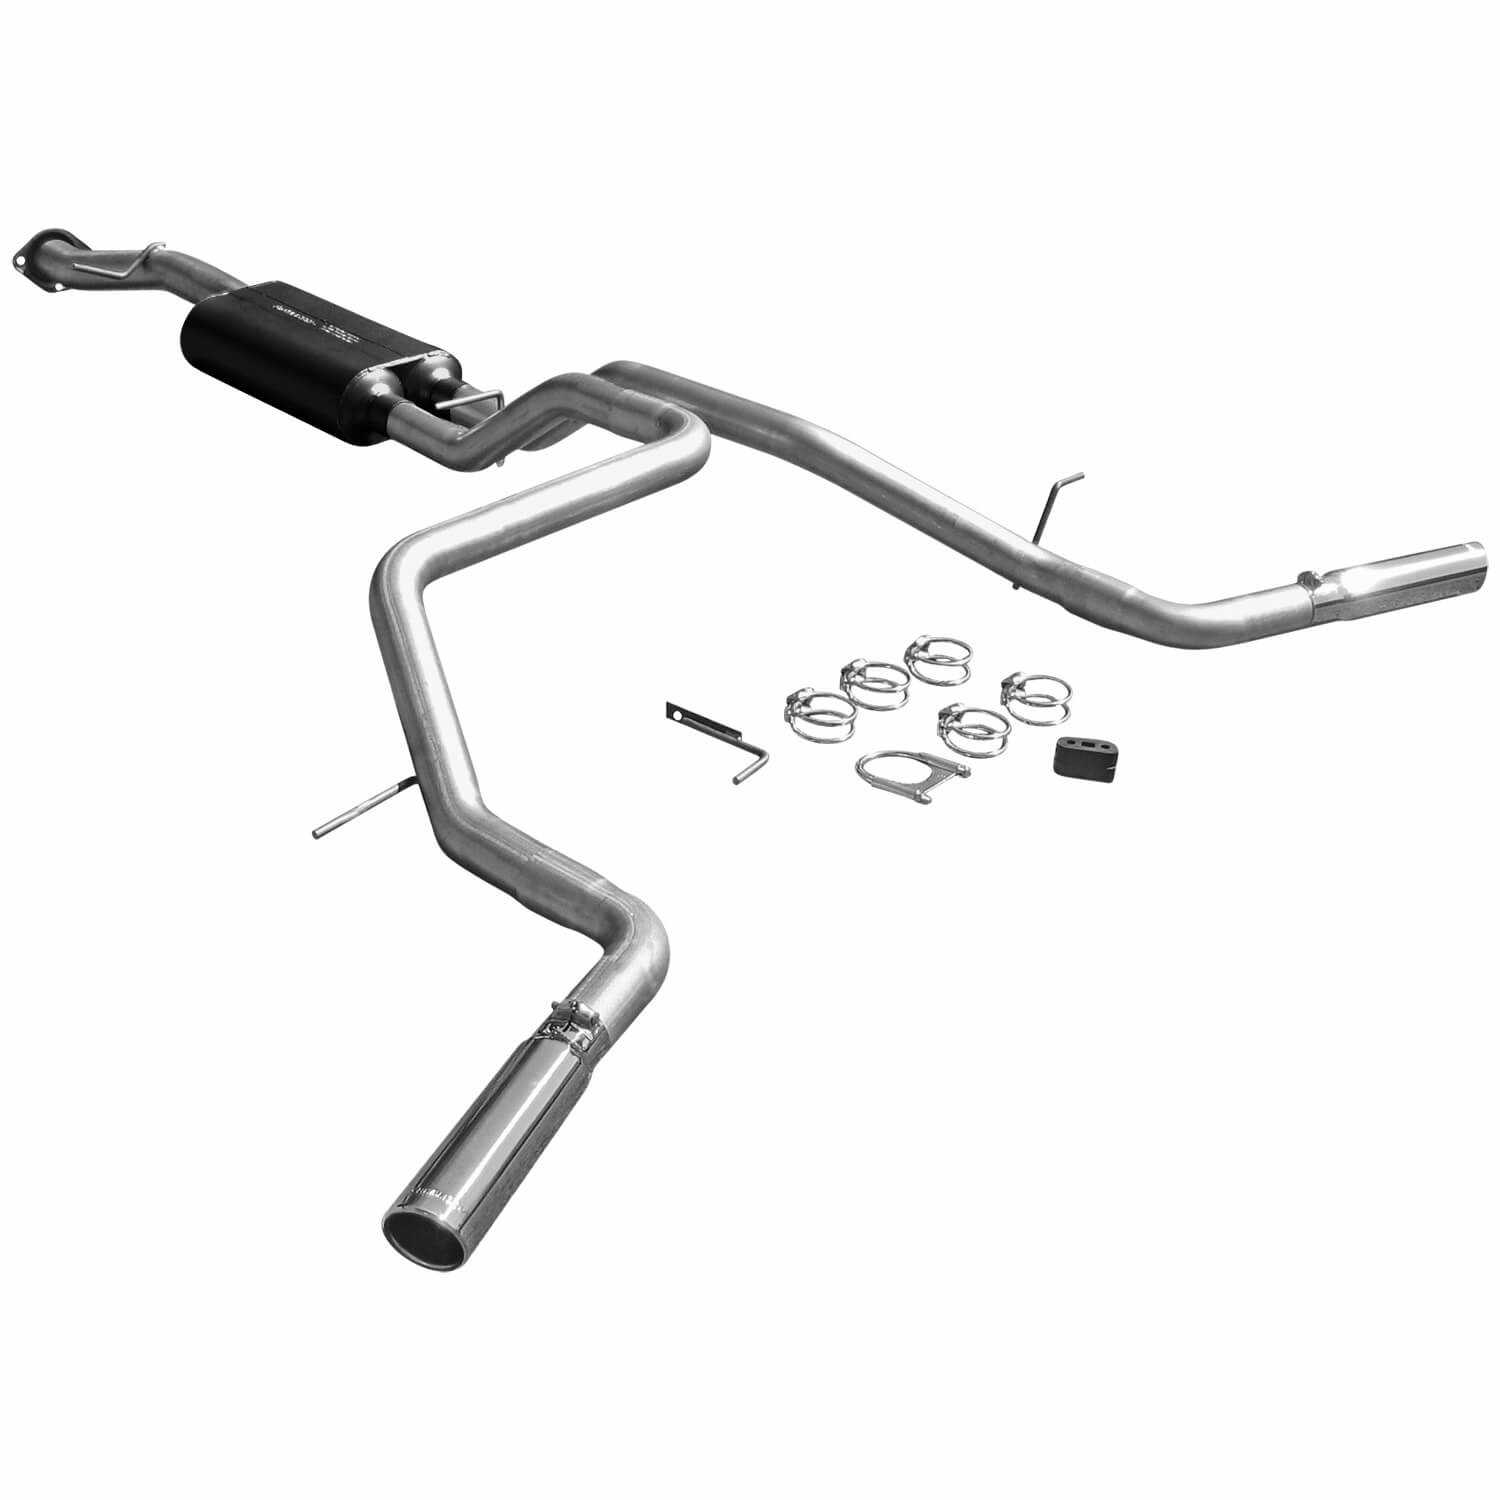 Flowmaster American Thunder Cat Back Exhaust System 17419